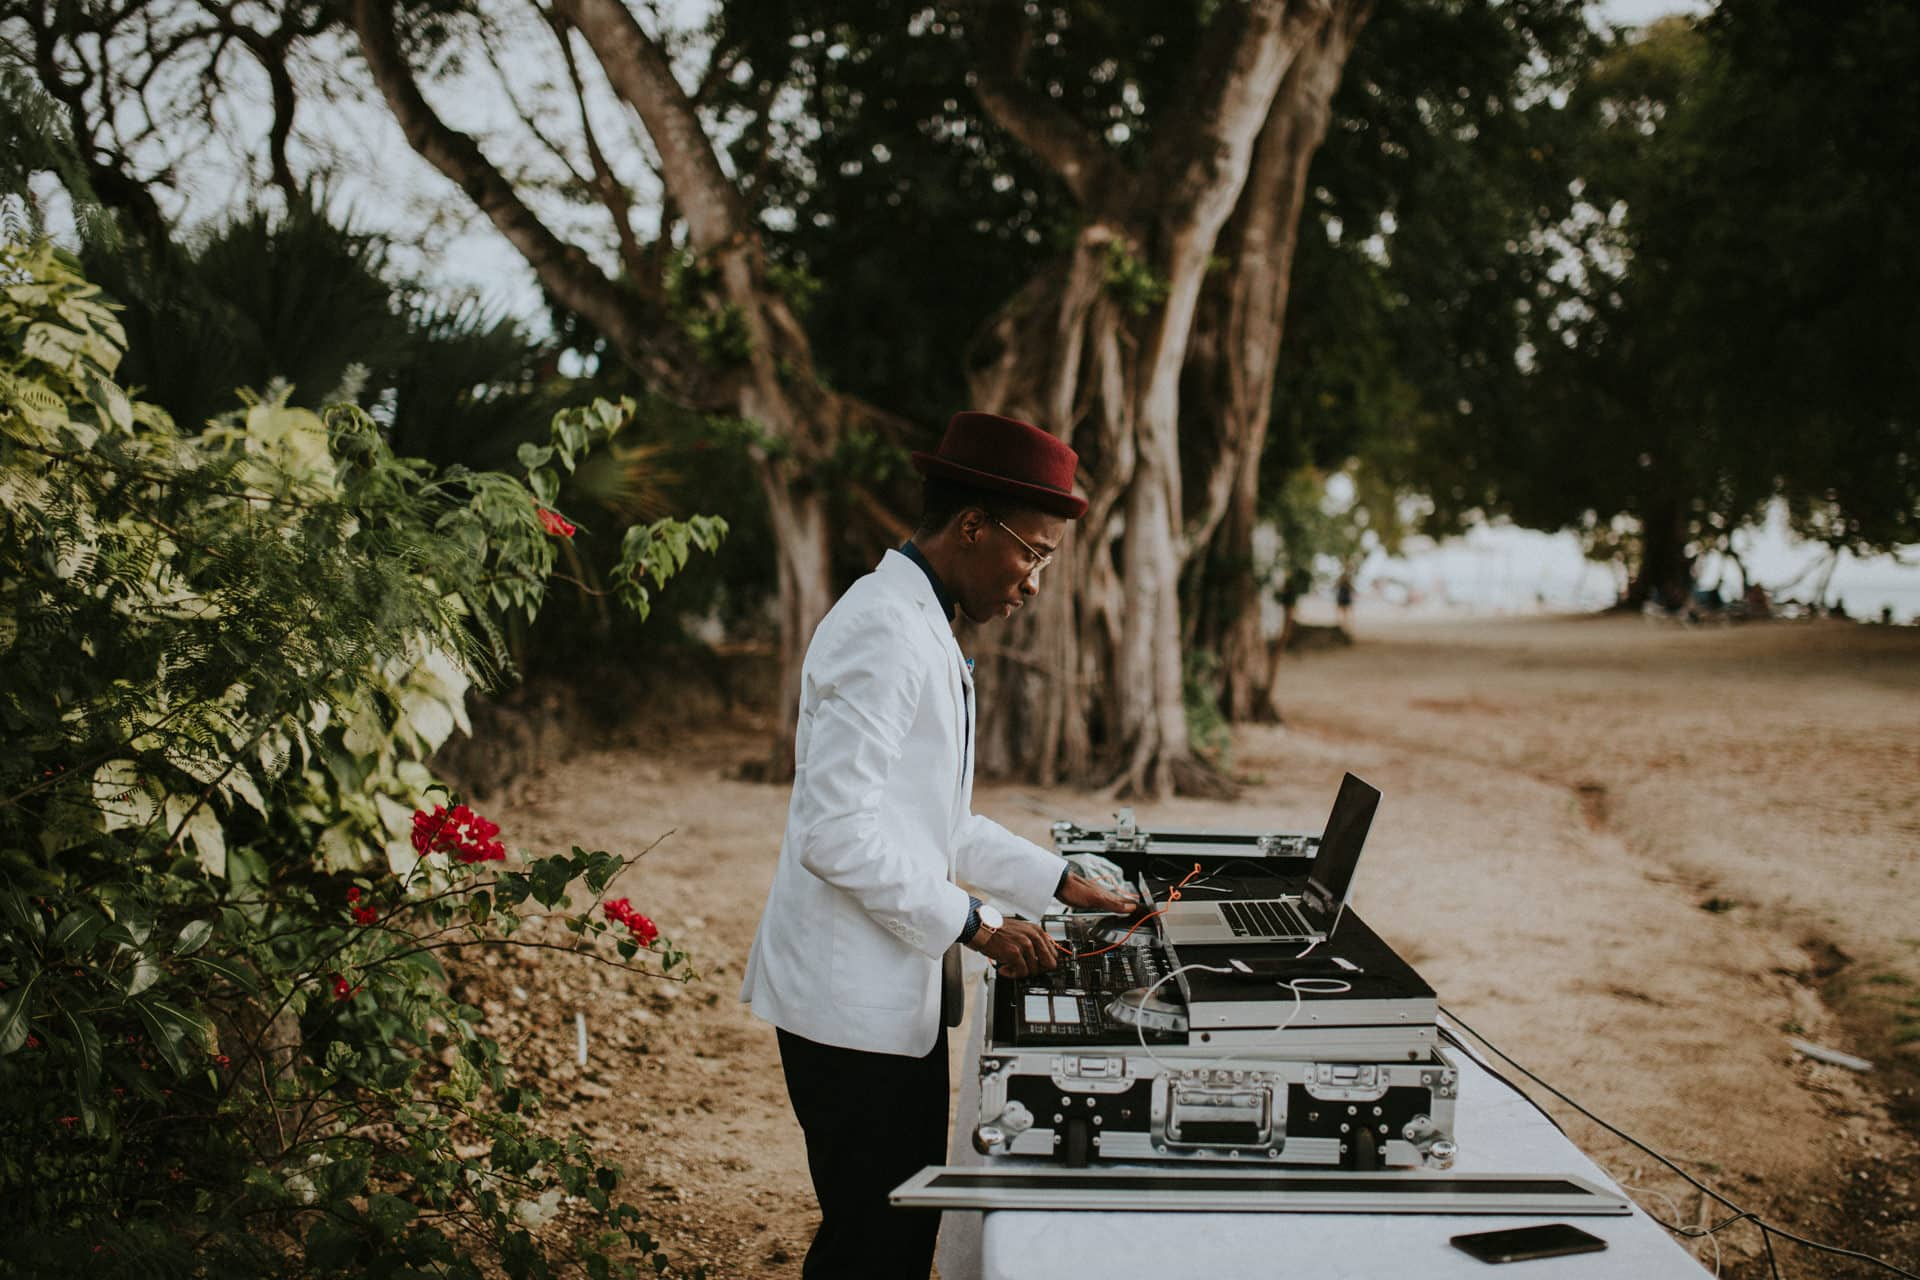 A DJ is playing music.